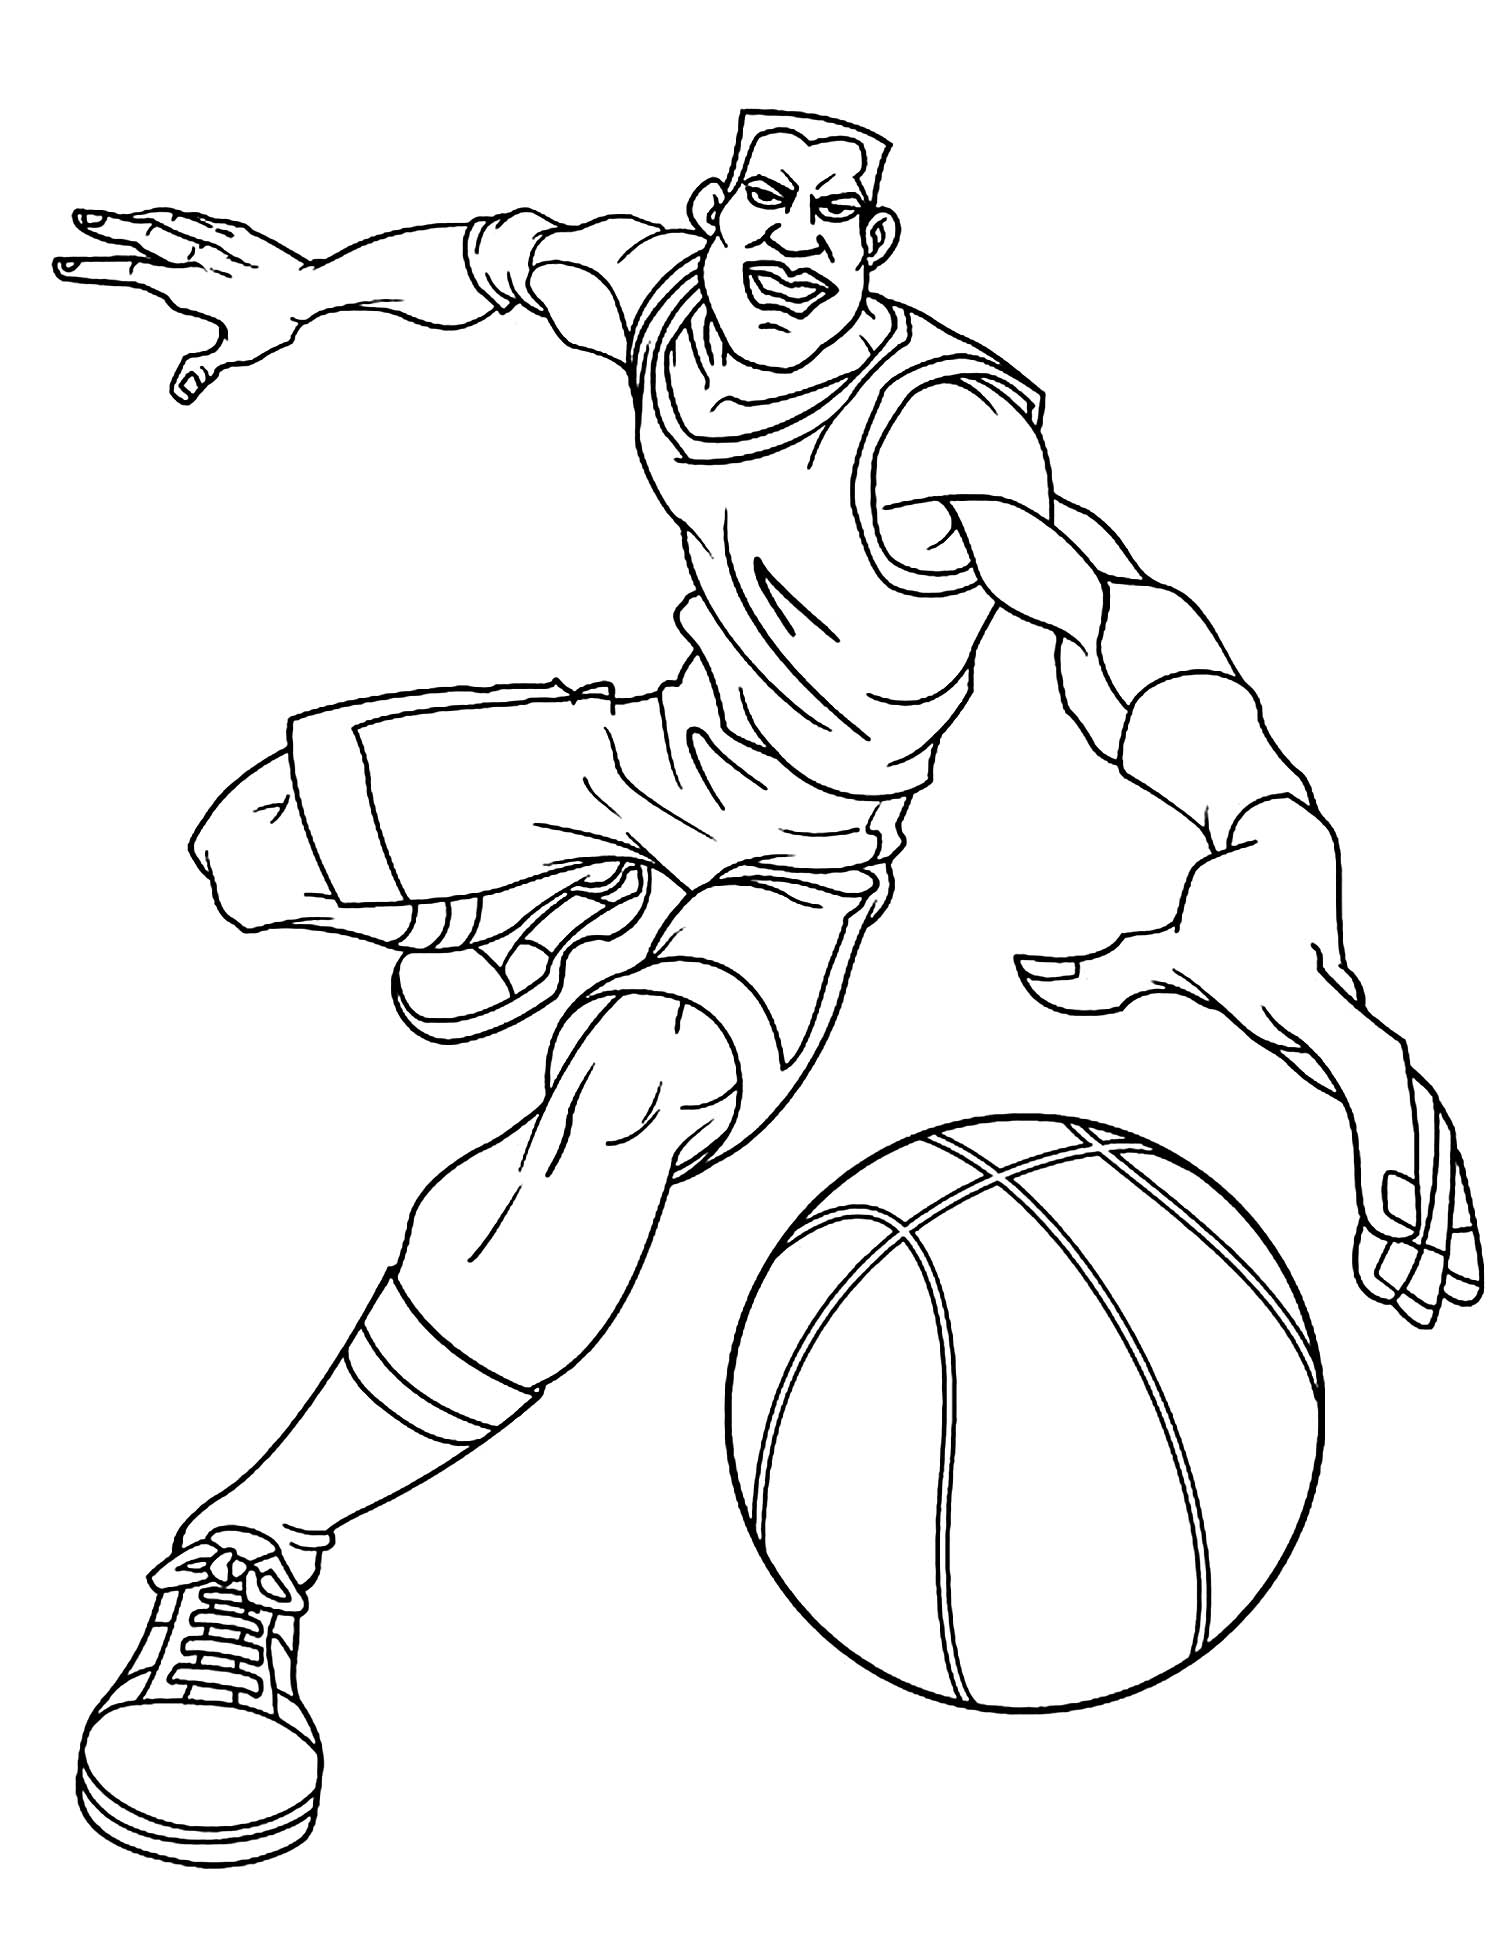 Funny free Basketball coloring page to print and color